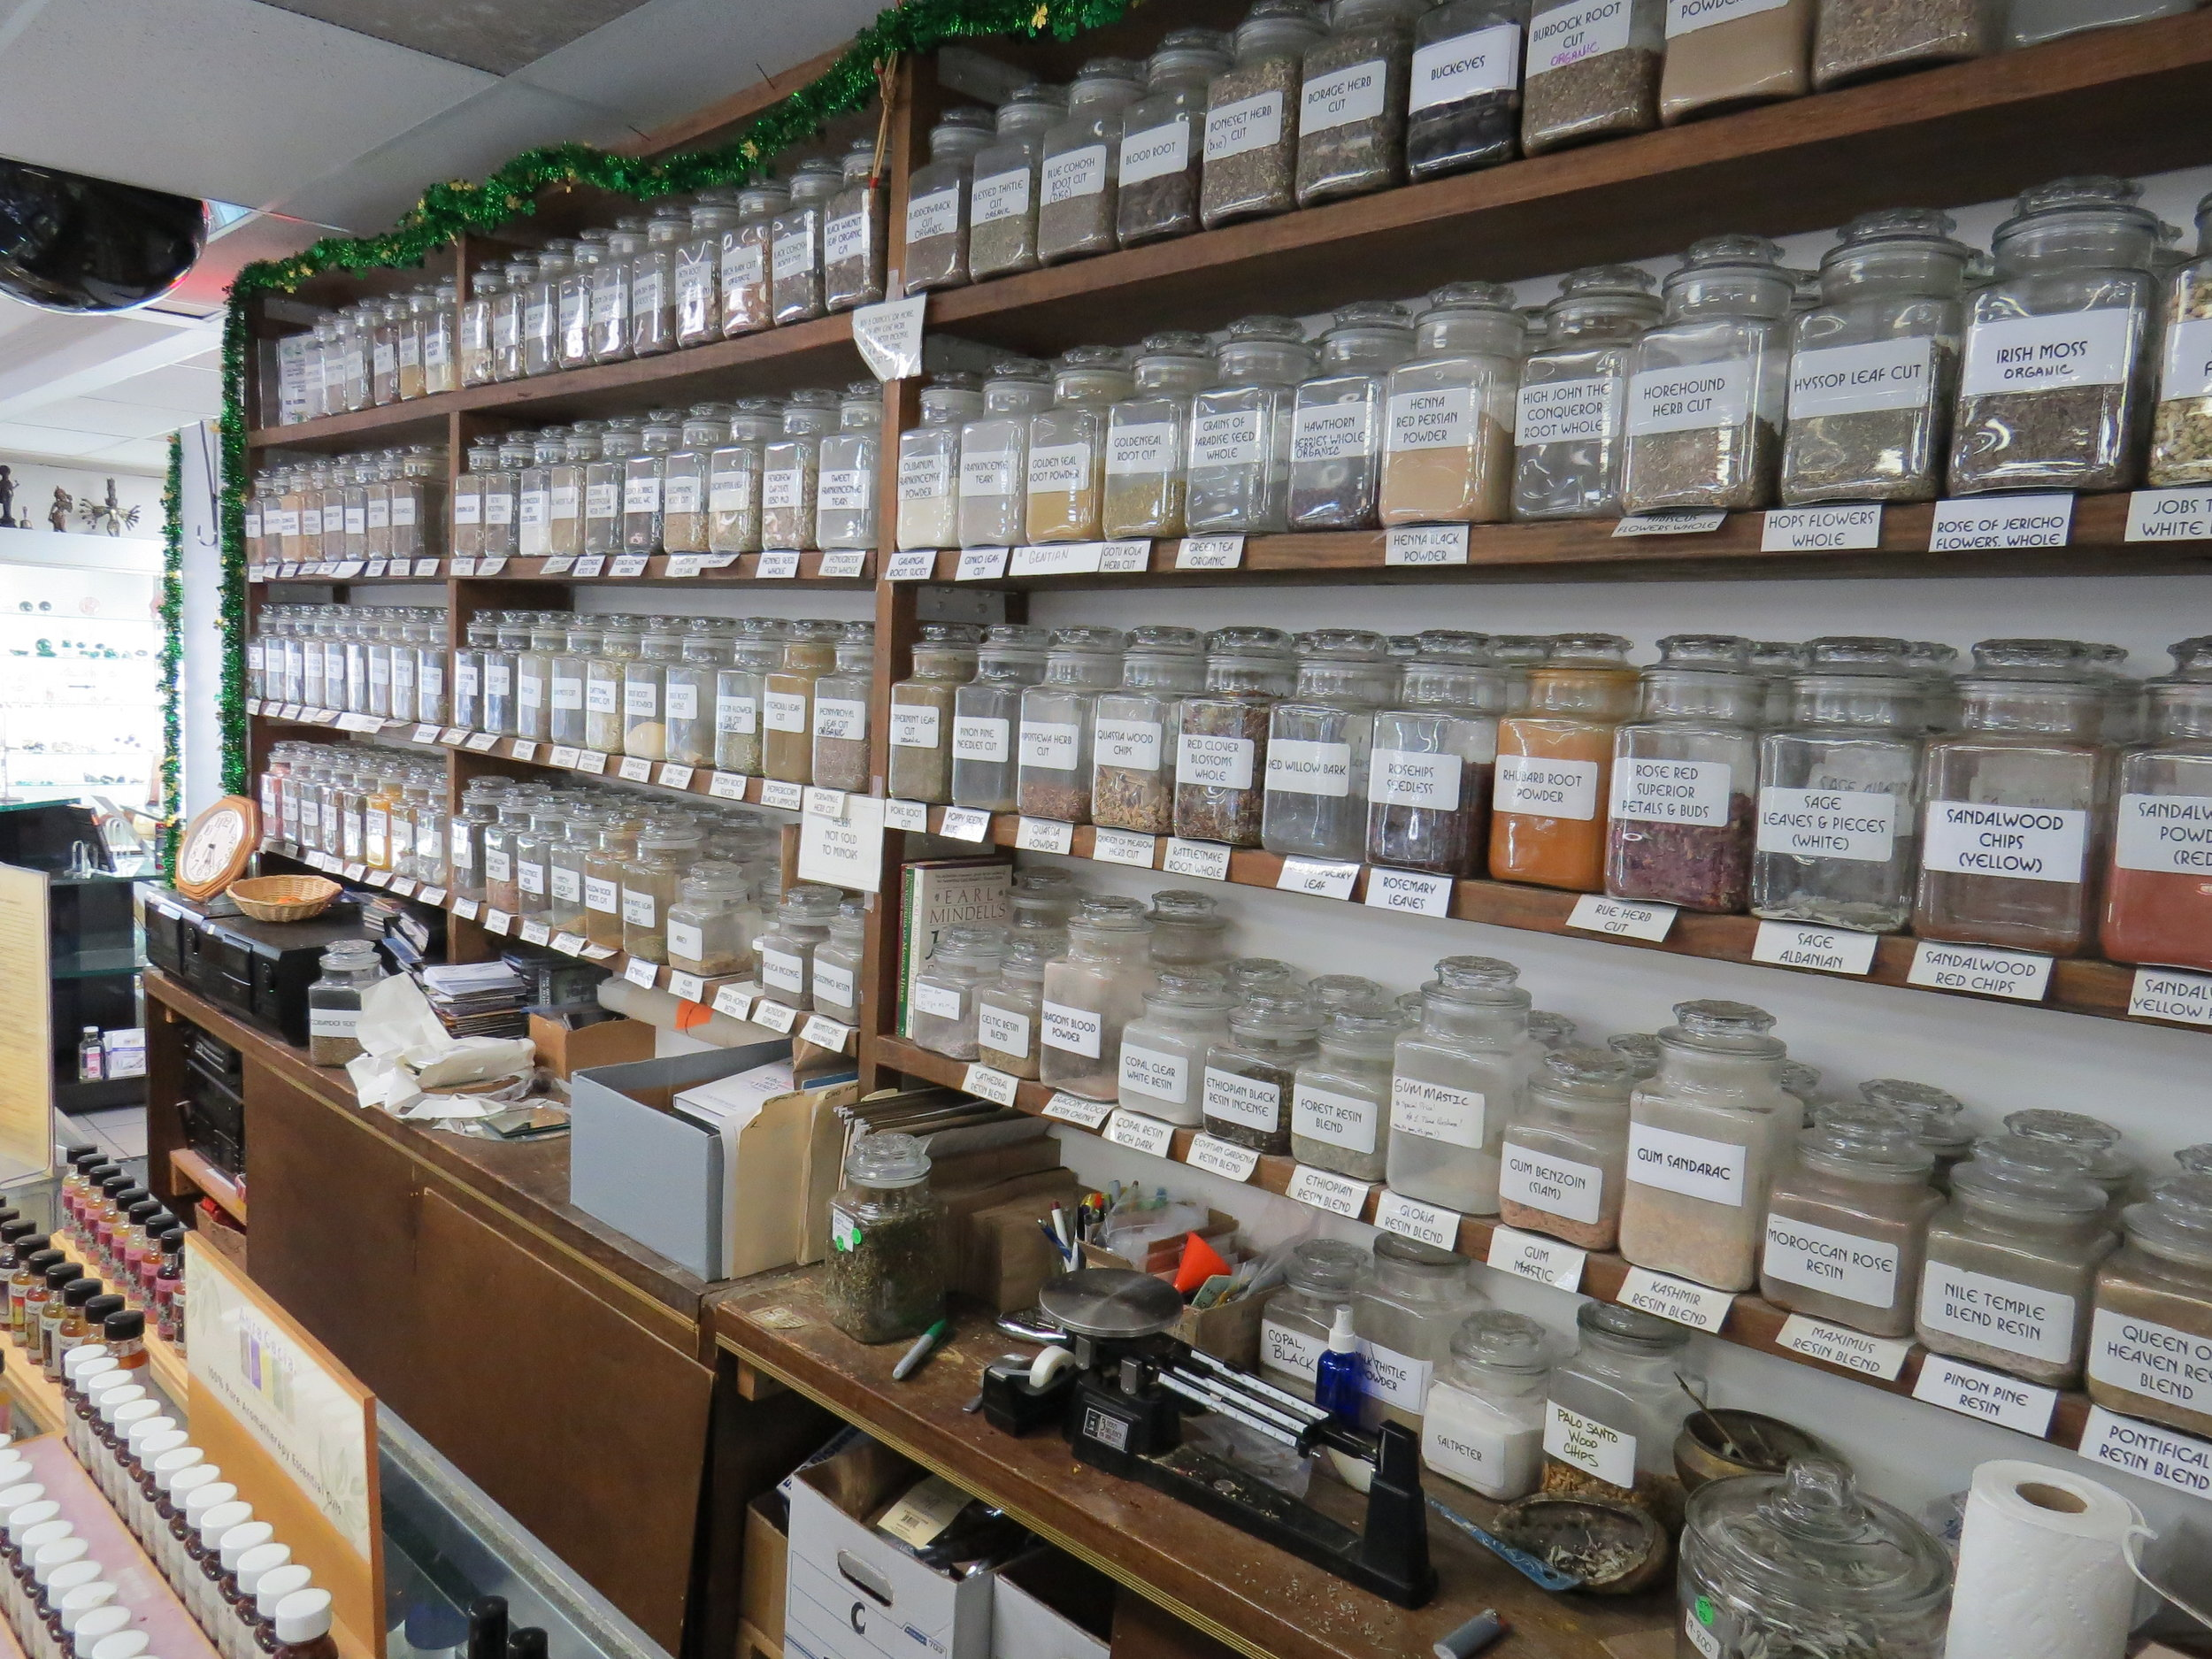 Wall of crushed herbs and roots. Pathways New Age Books and Music. Photo by Diva Norton.